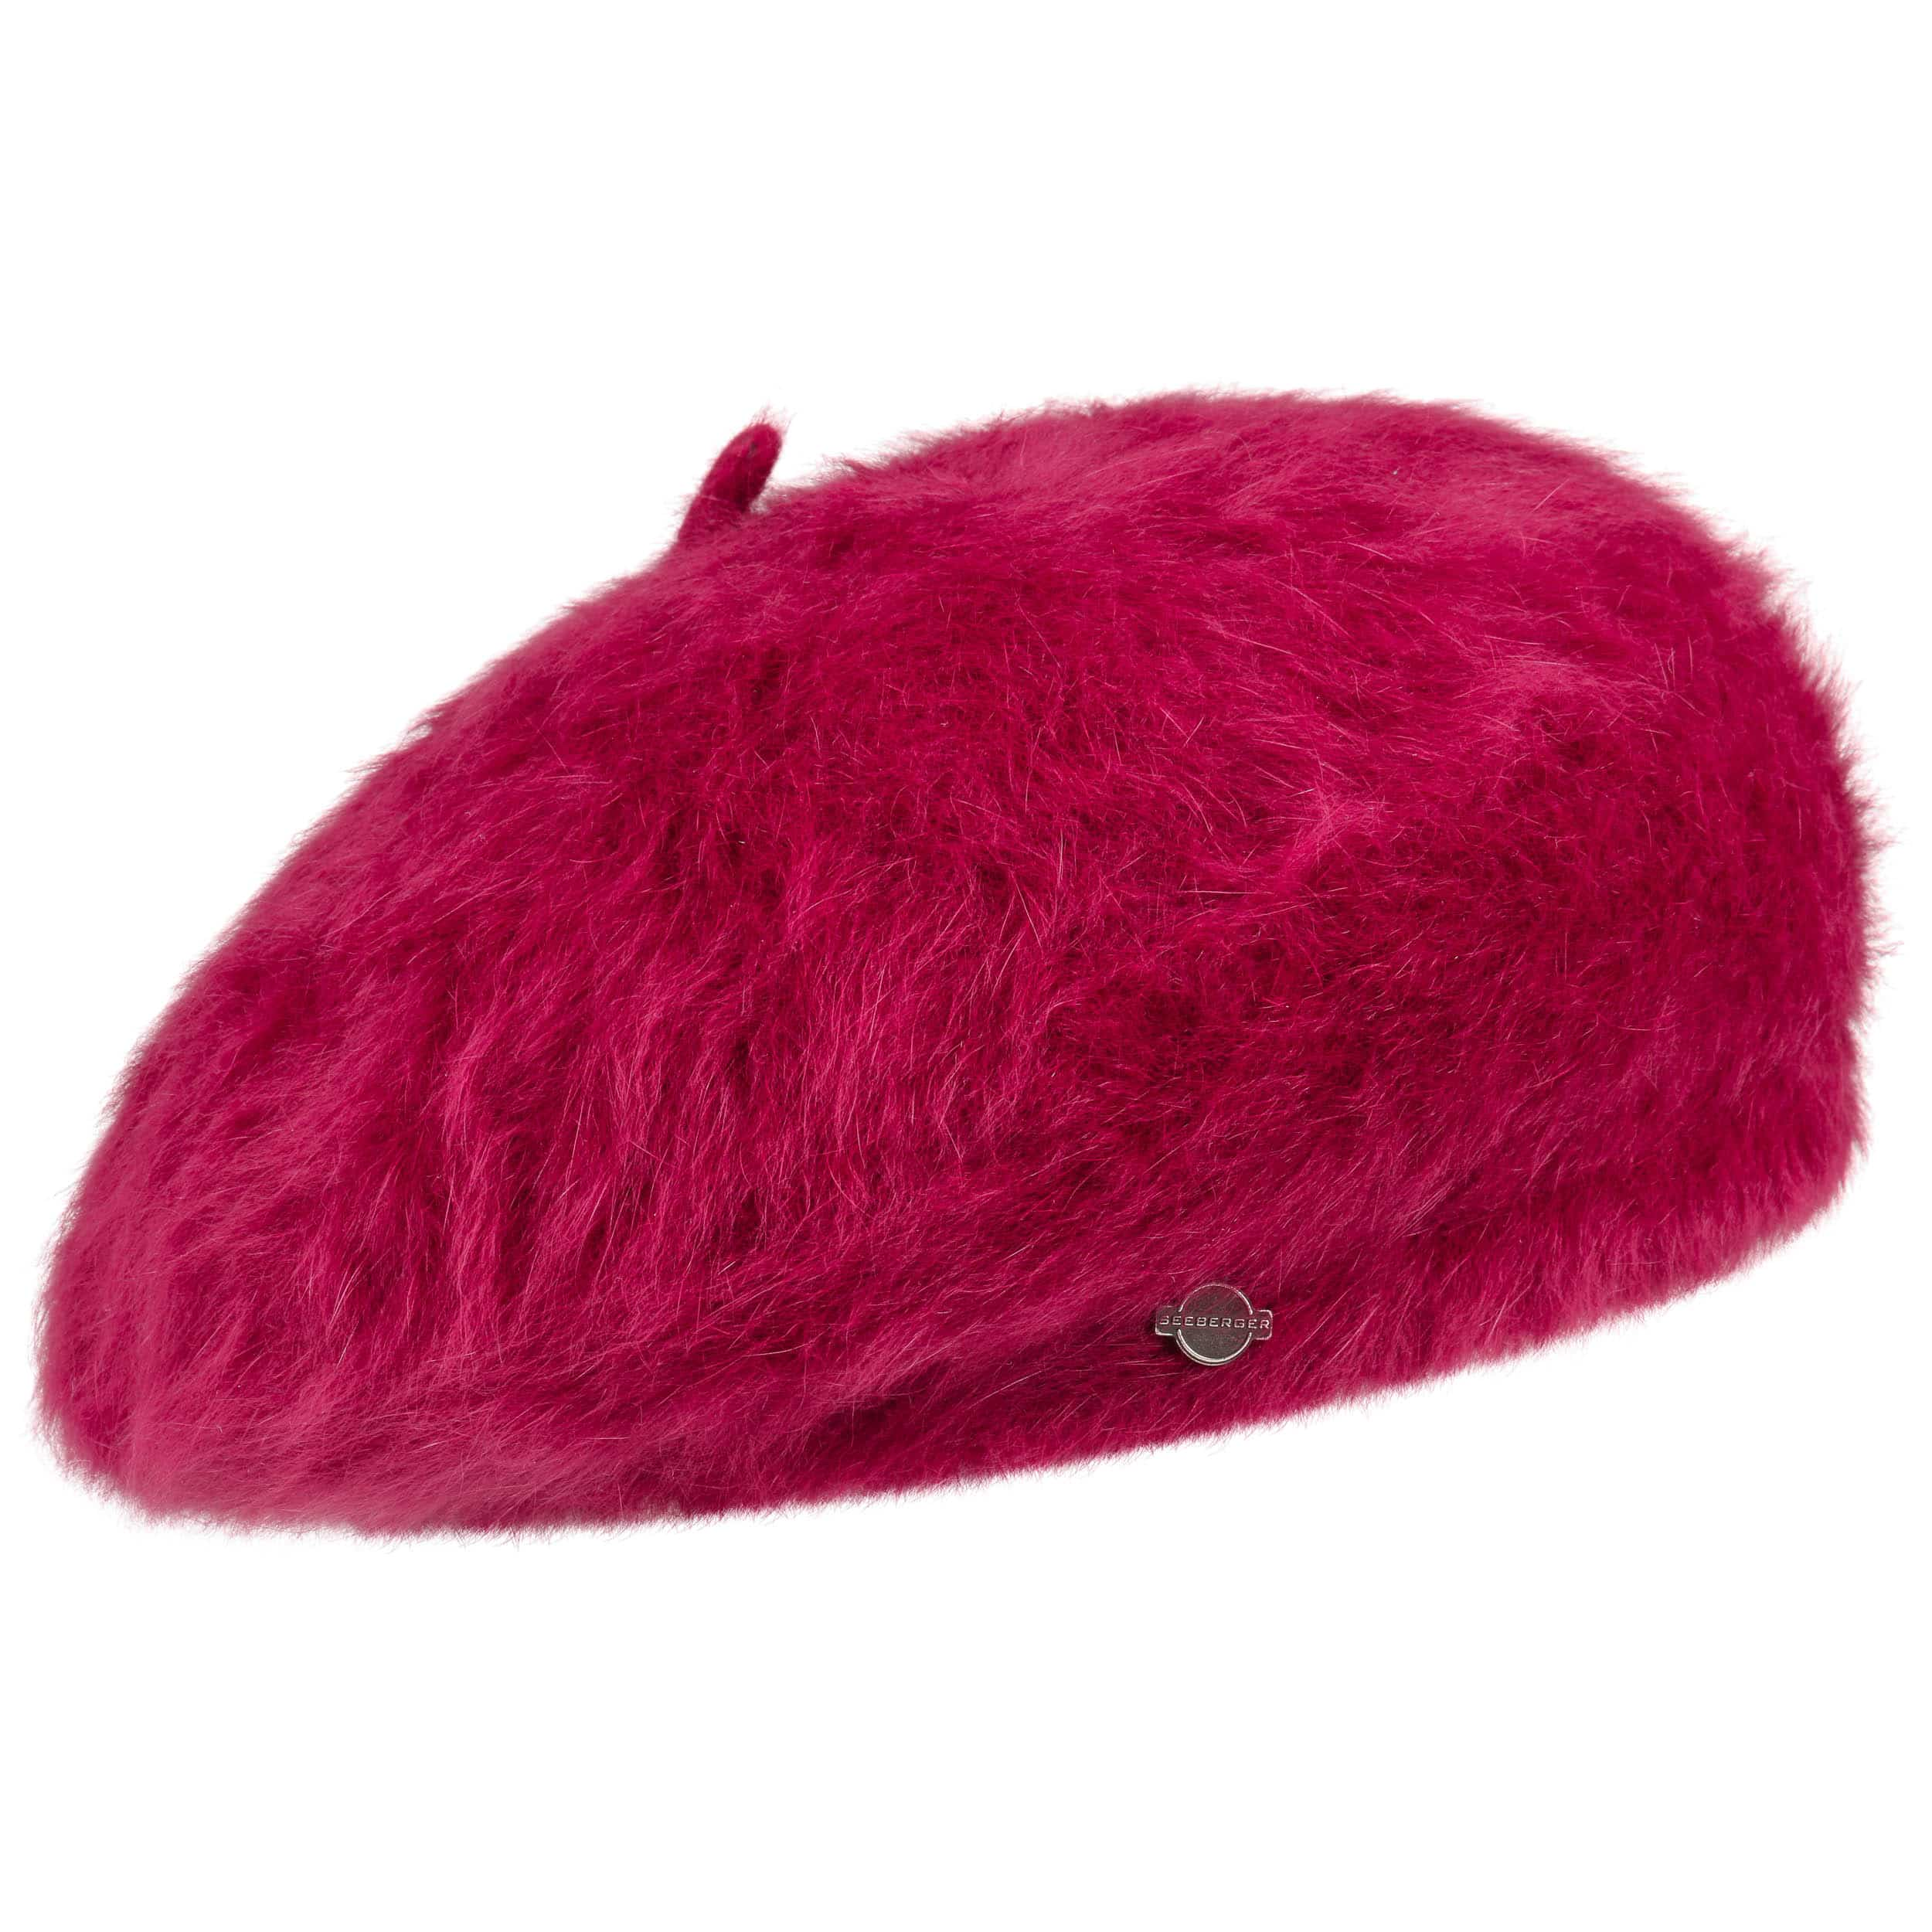 Beret in 100% new milled wool Seeberger red Seeberger rhCCq